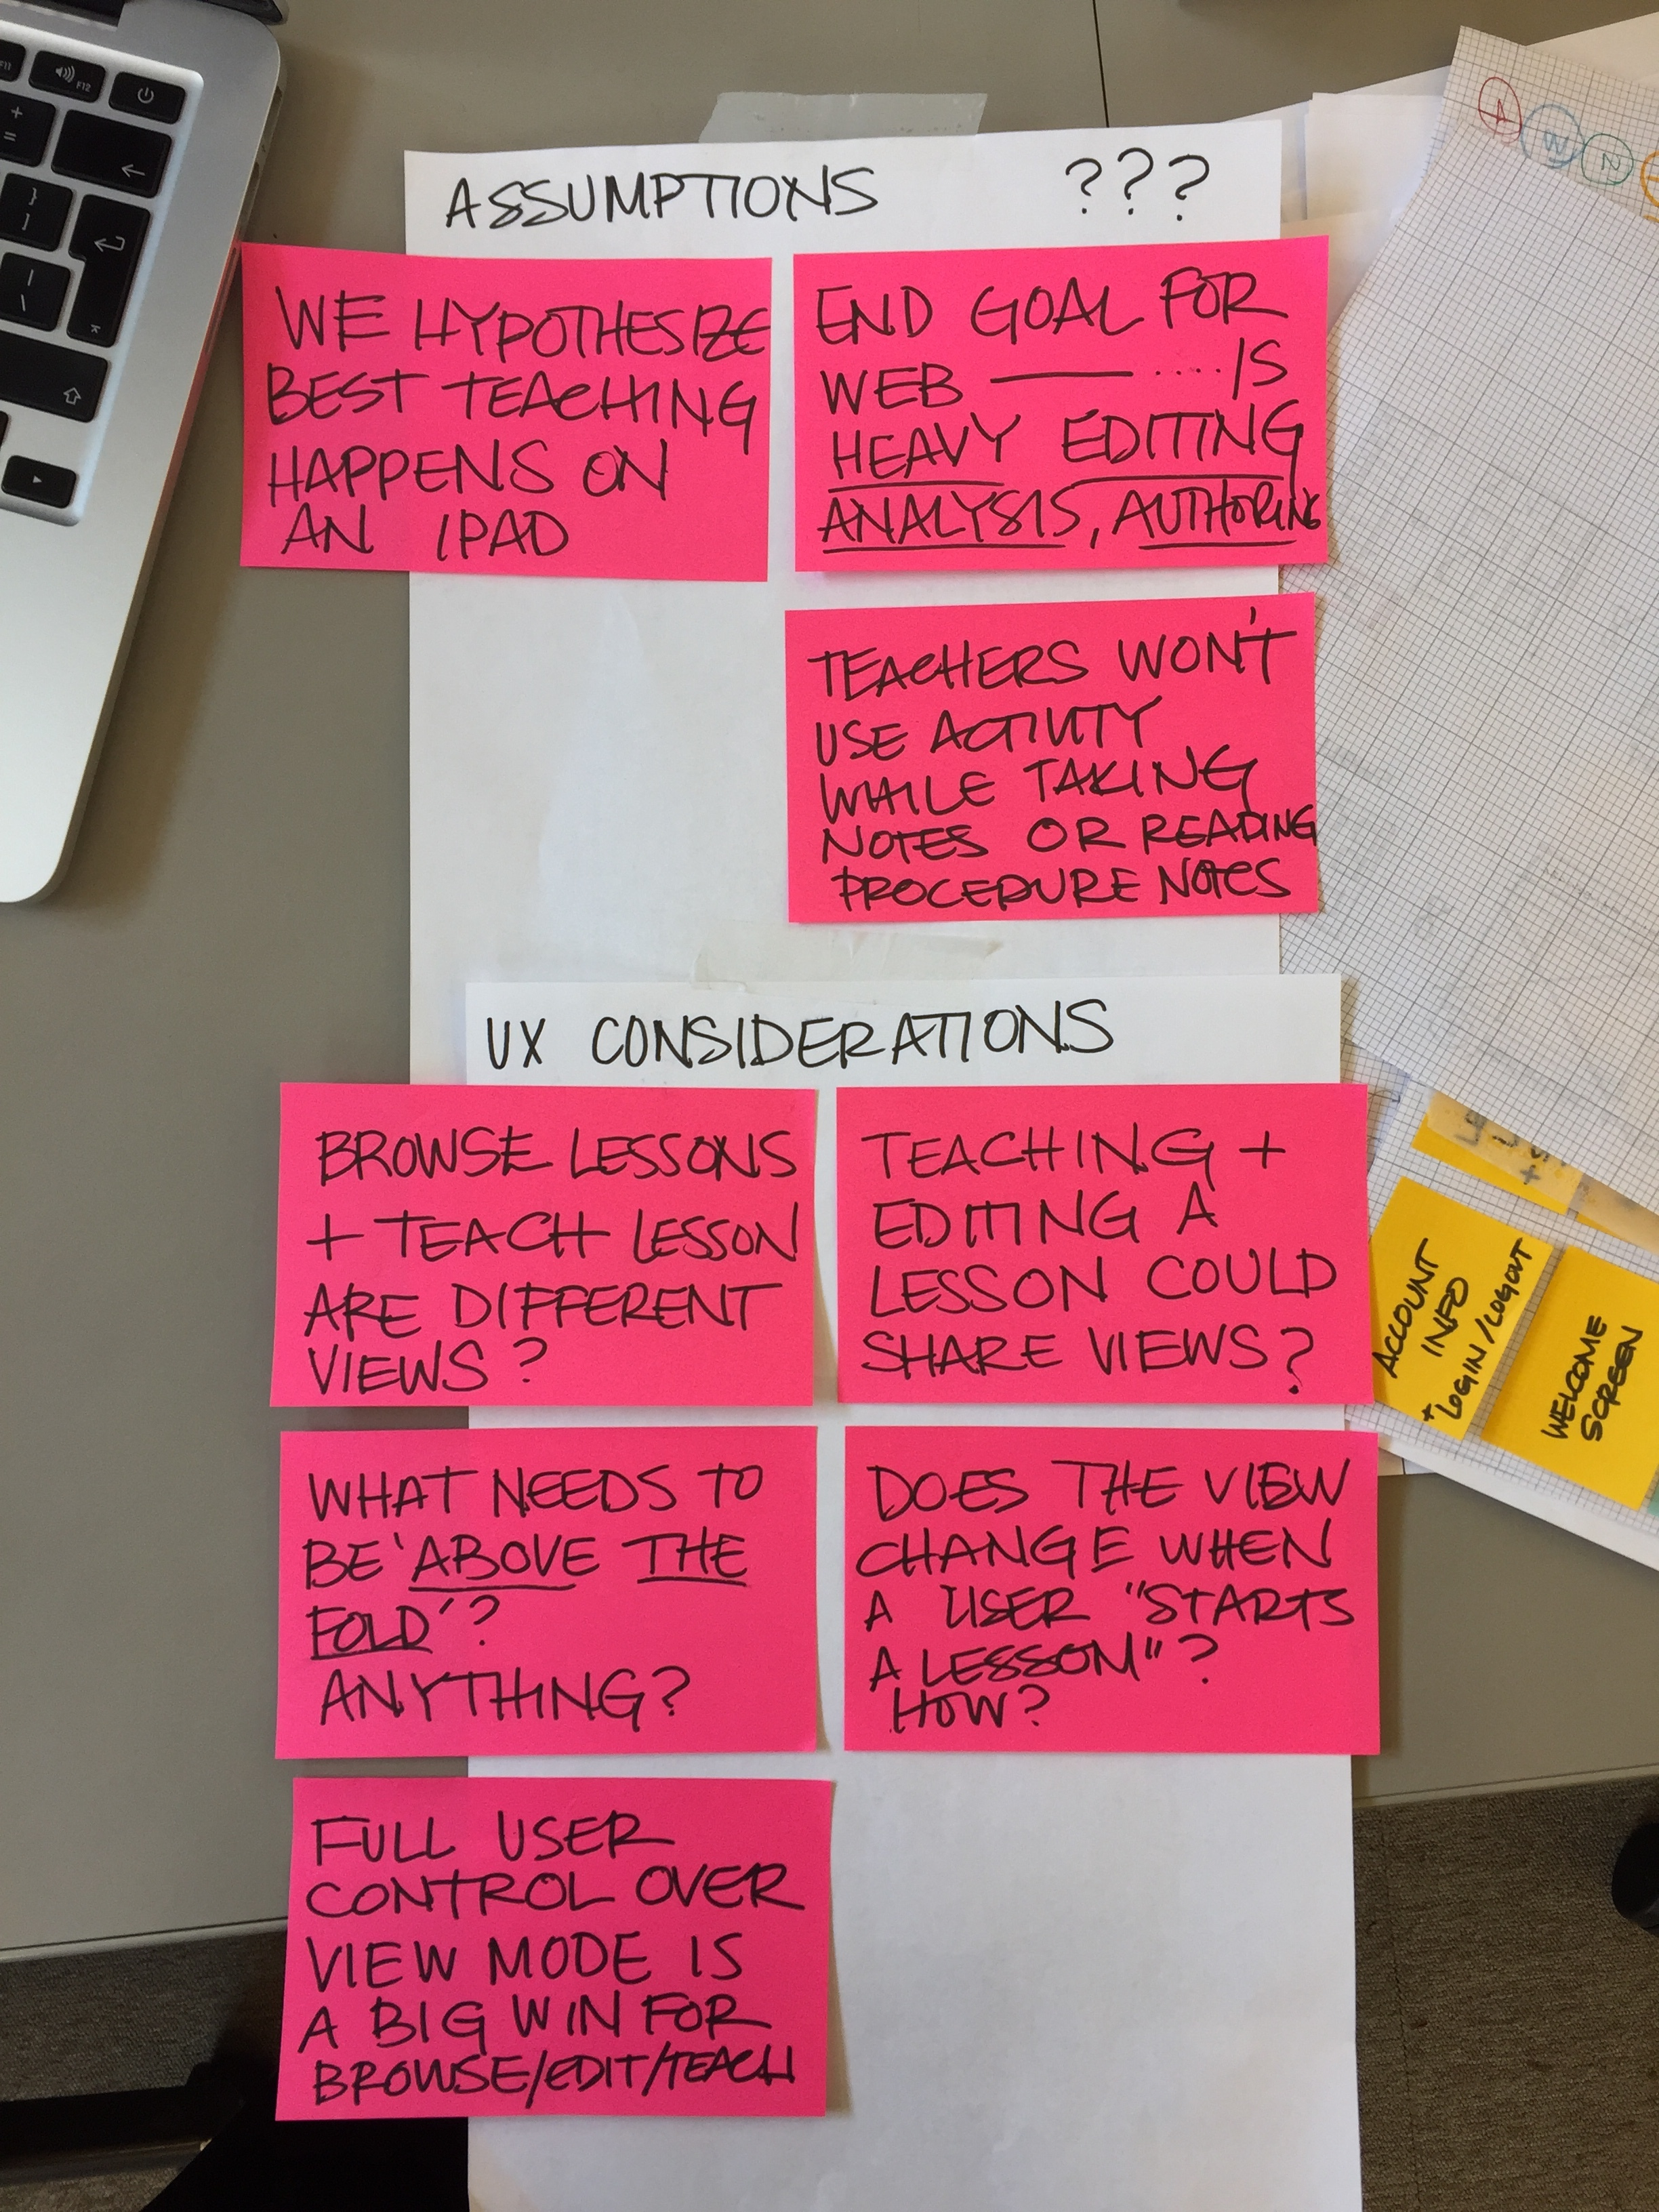 I always Start BY listing out team assumptions, hypotheses and experience design considerations -